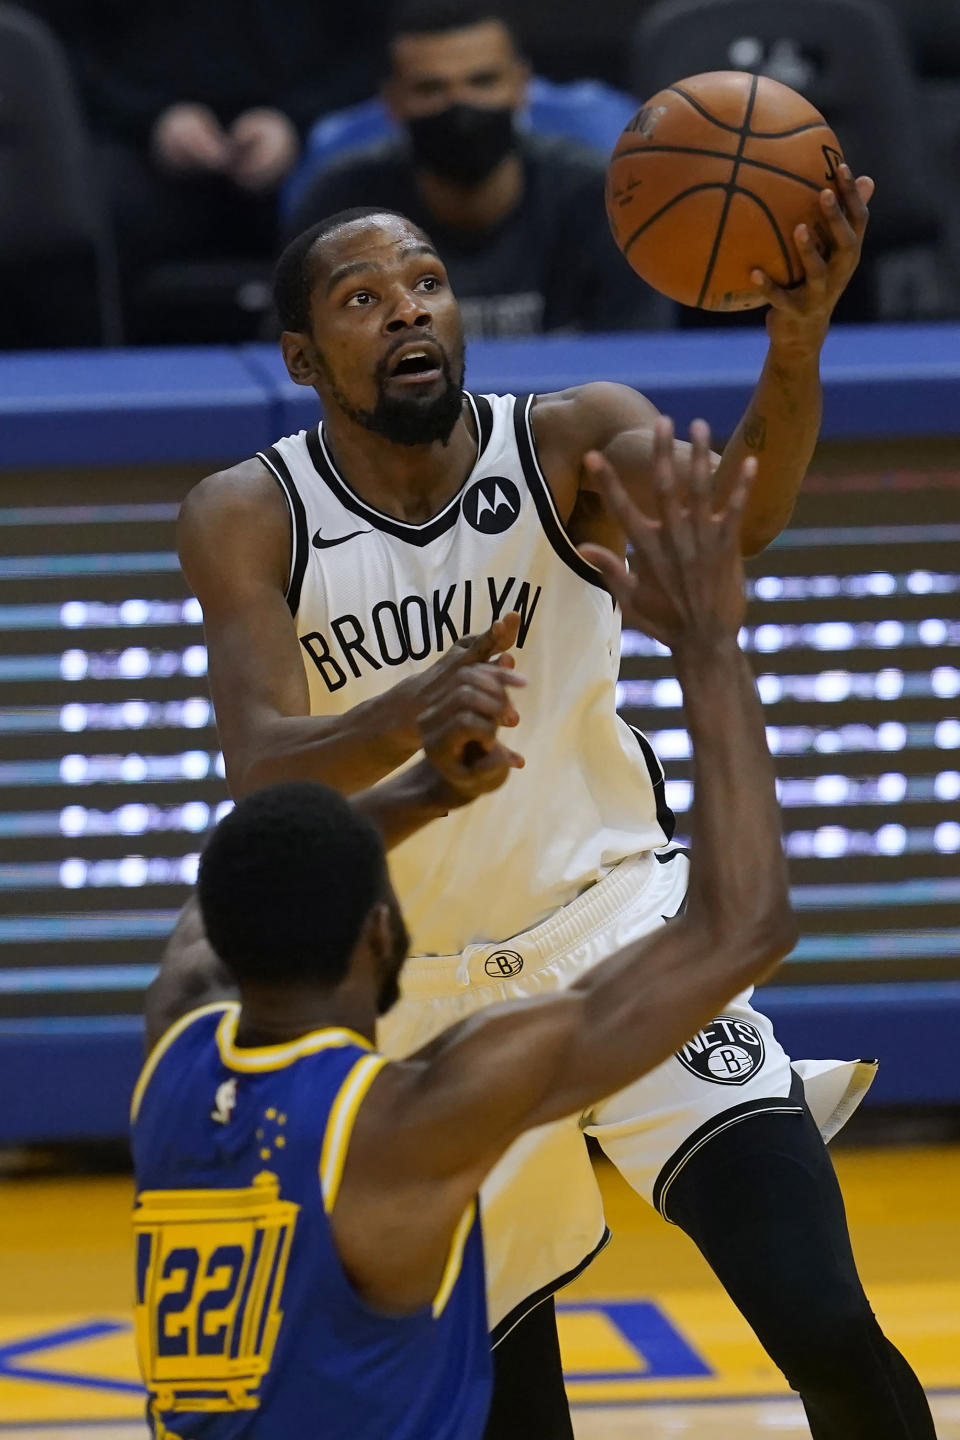 Brooklyn Nets forward Kevin Durant, top, shoots asGolden State Warriors forward Andrew Wiggins defends during the first half of an NBA basketball game in San Francisco, Saturday, Feb. 13, 2021. (AP Photo/Jeff Chiu)